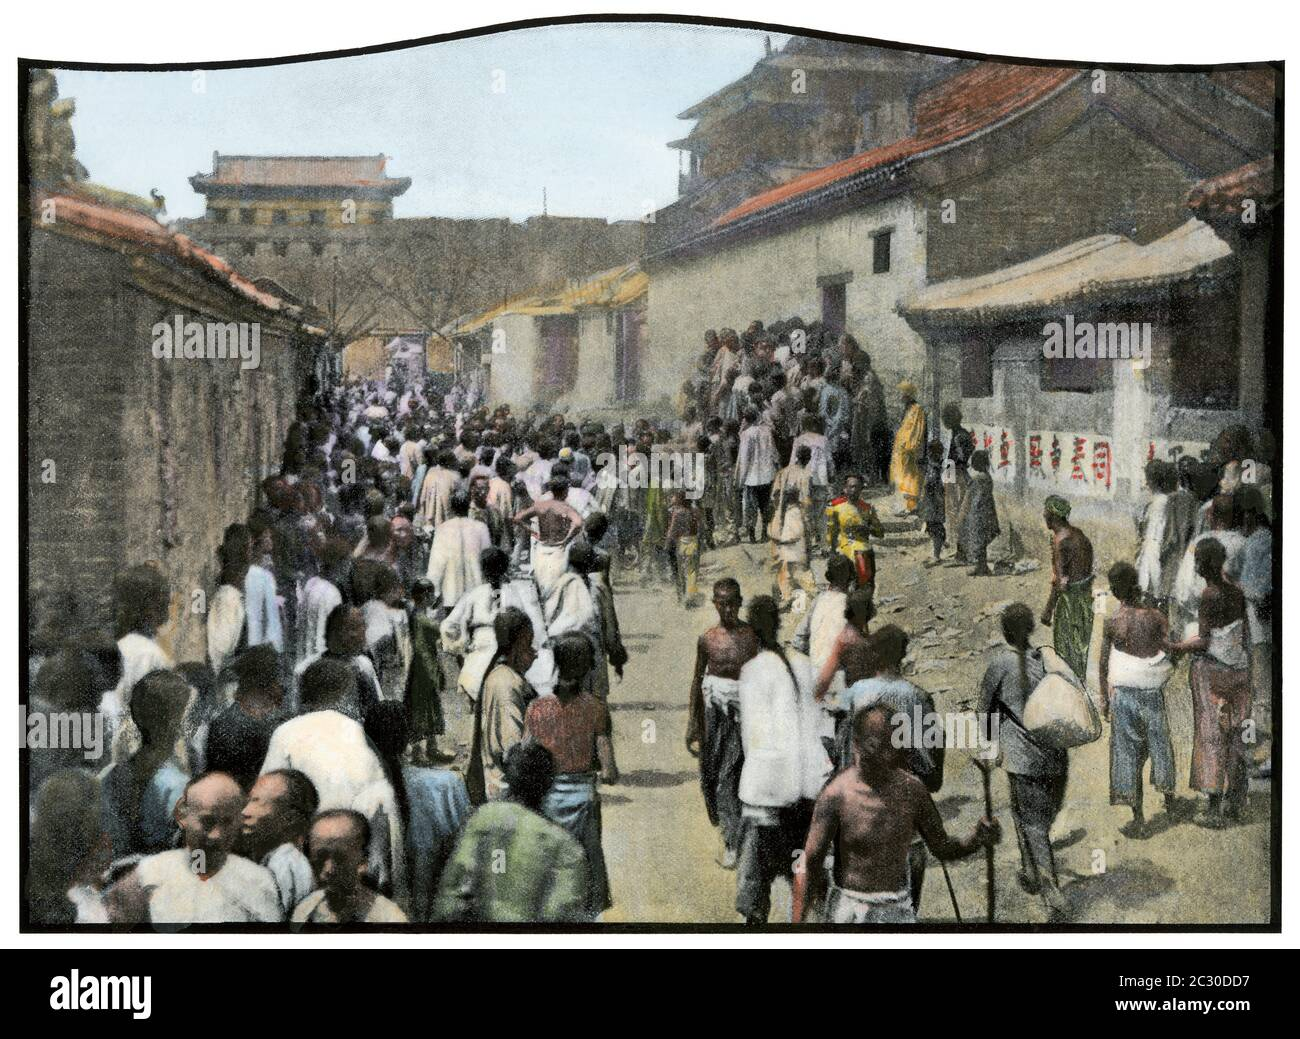 Residents of Peking (Beijing) looting a warehouse during the Boxer Rebellion, 1900. Hand-colored halftone of a photograph Stock Photo